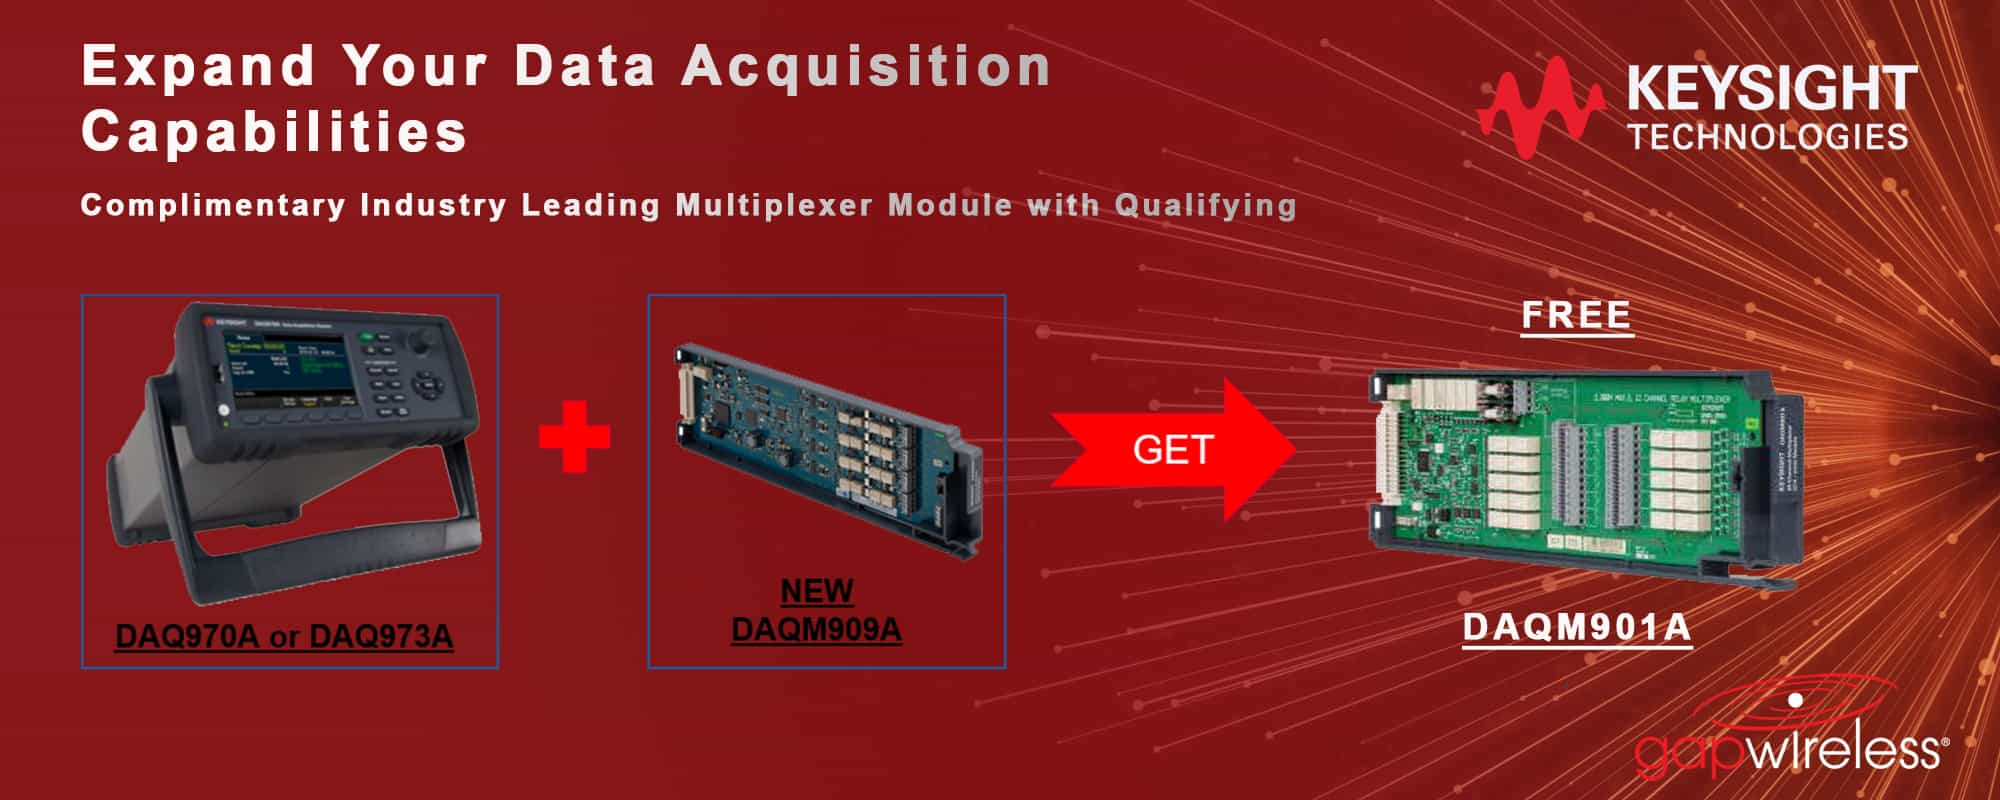 Expand Your DAQ Capabilities Promotion Keysight